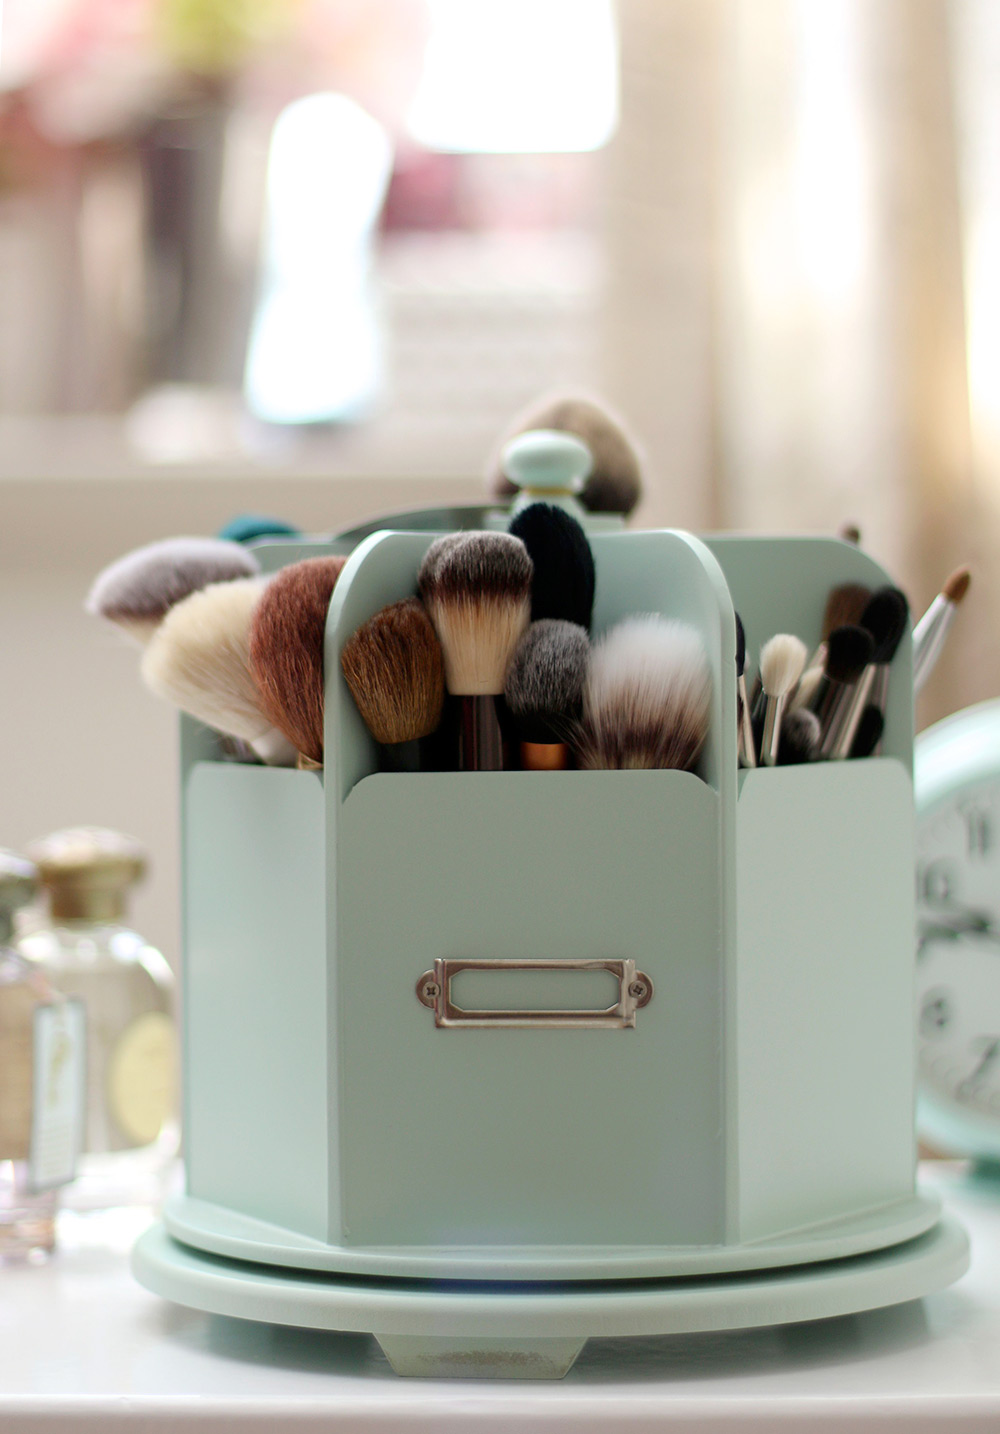 brush-storage